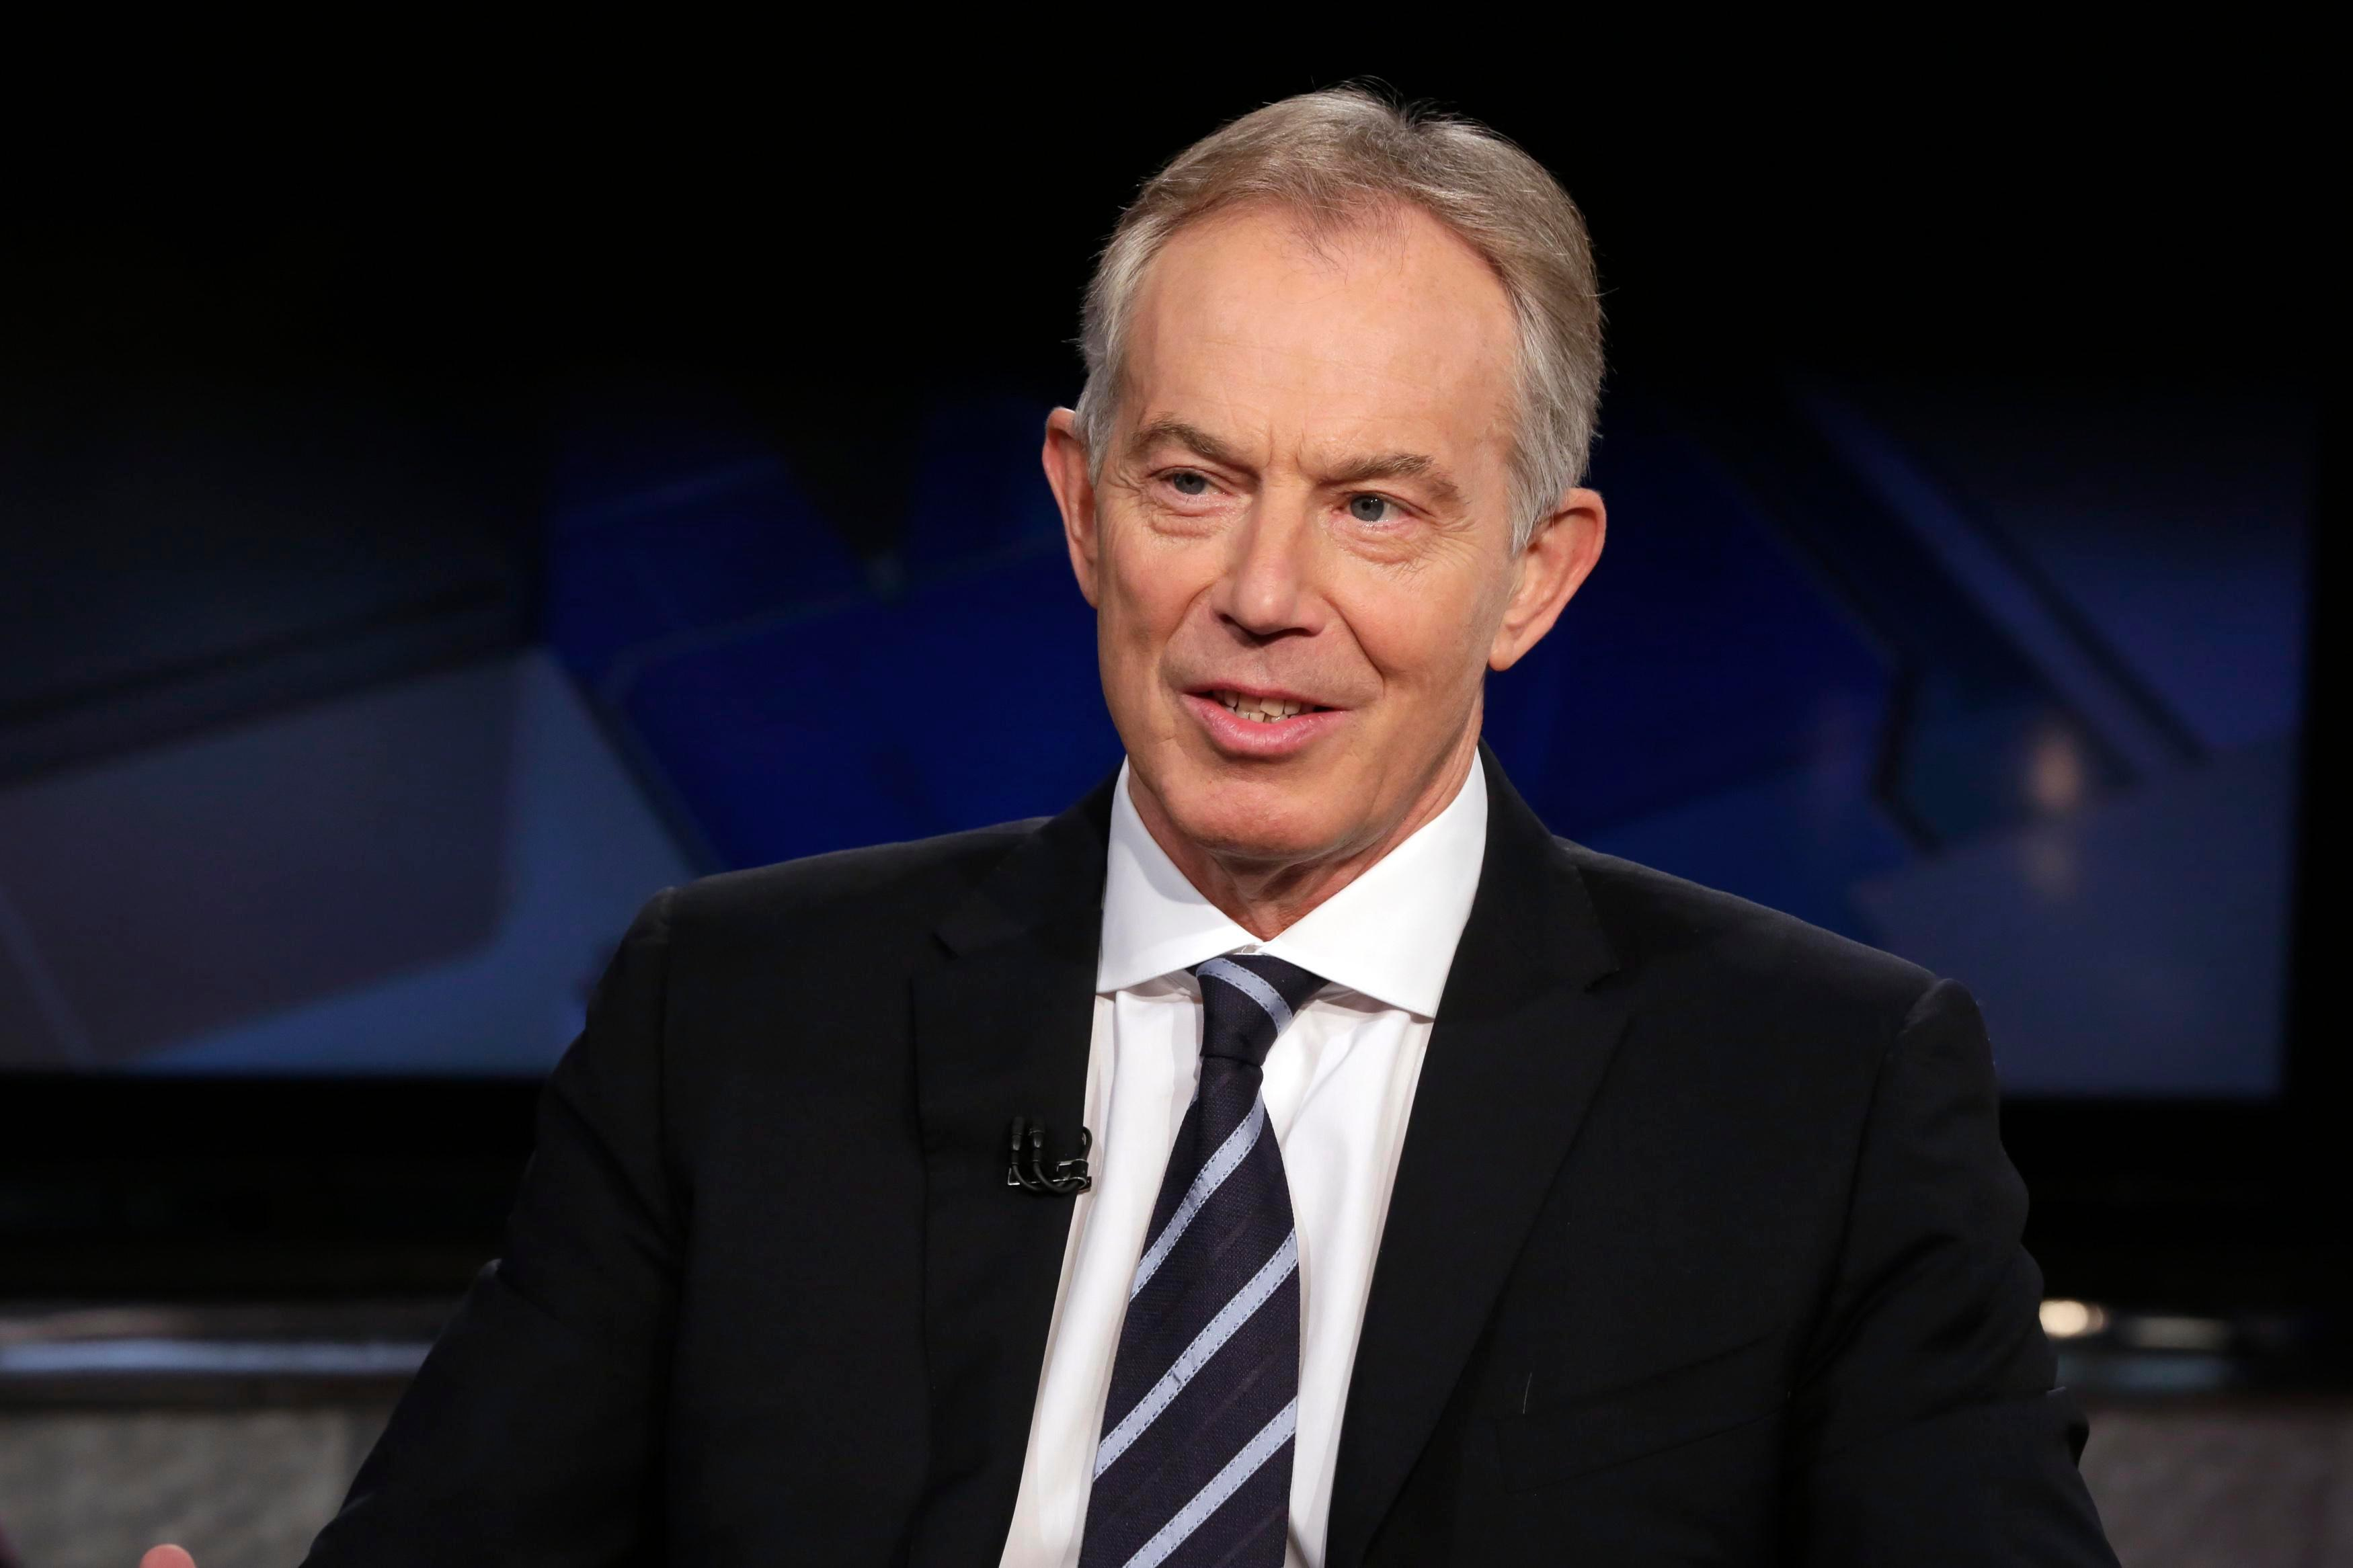 Tony Blair's stomach-churning lies about Brexit are putrid even for him — thankfully so few voters listen